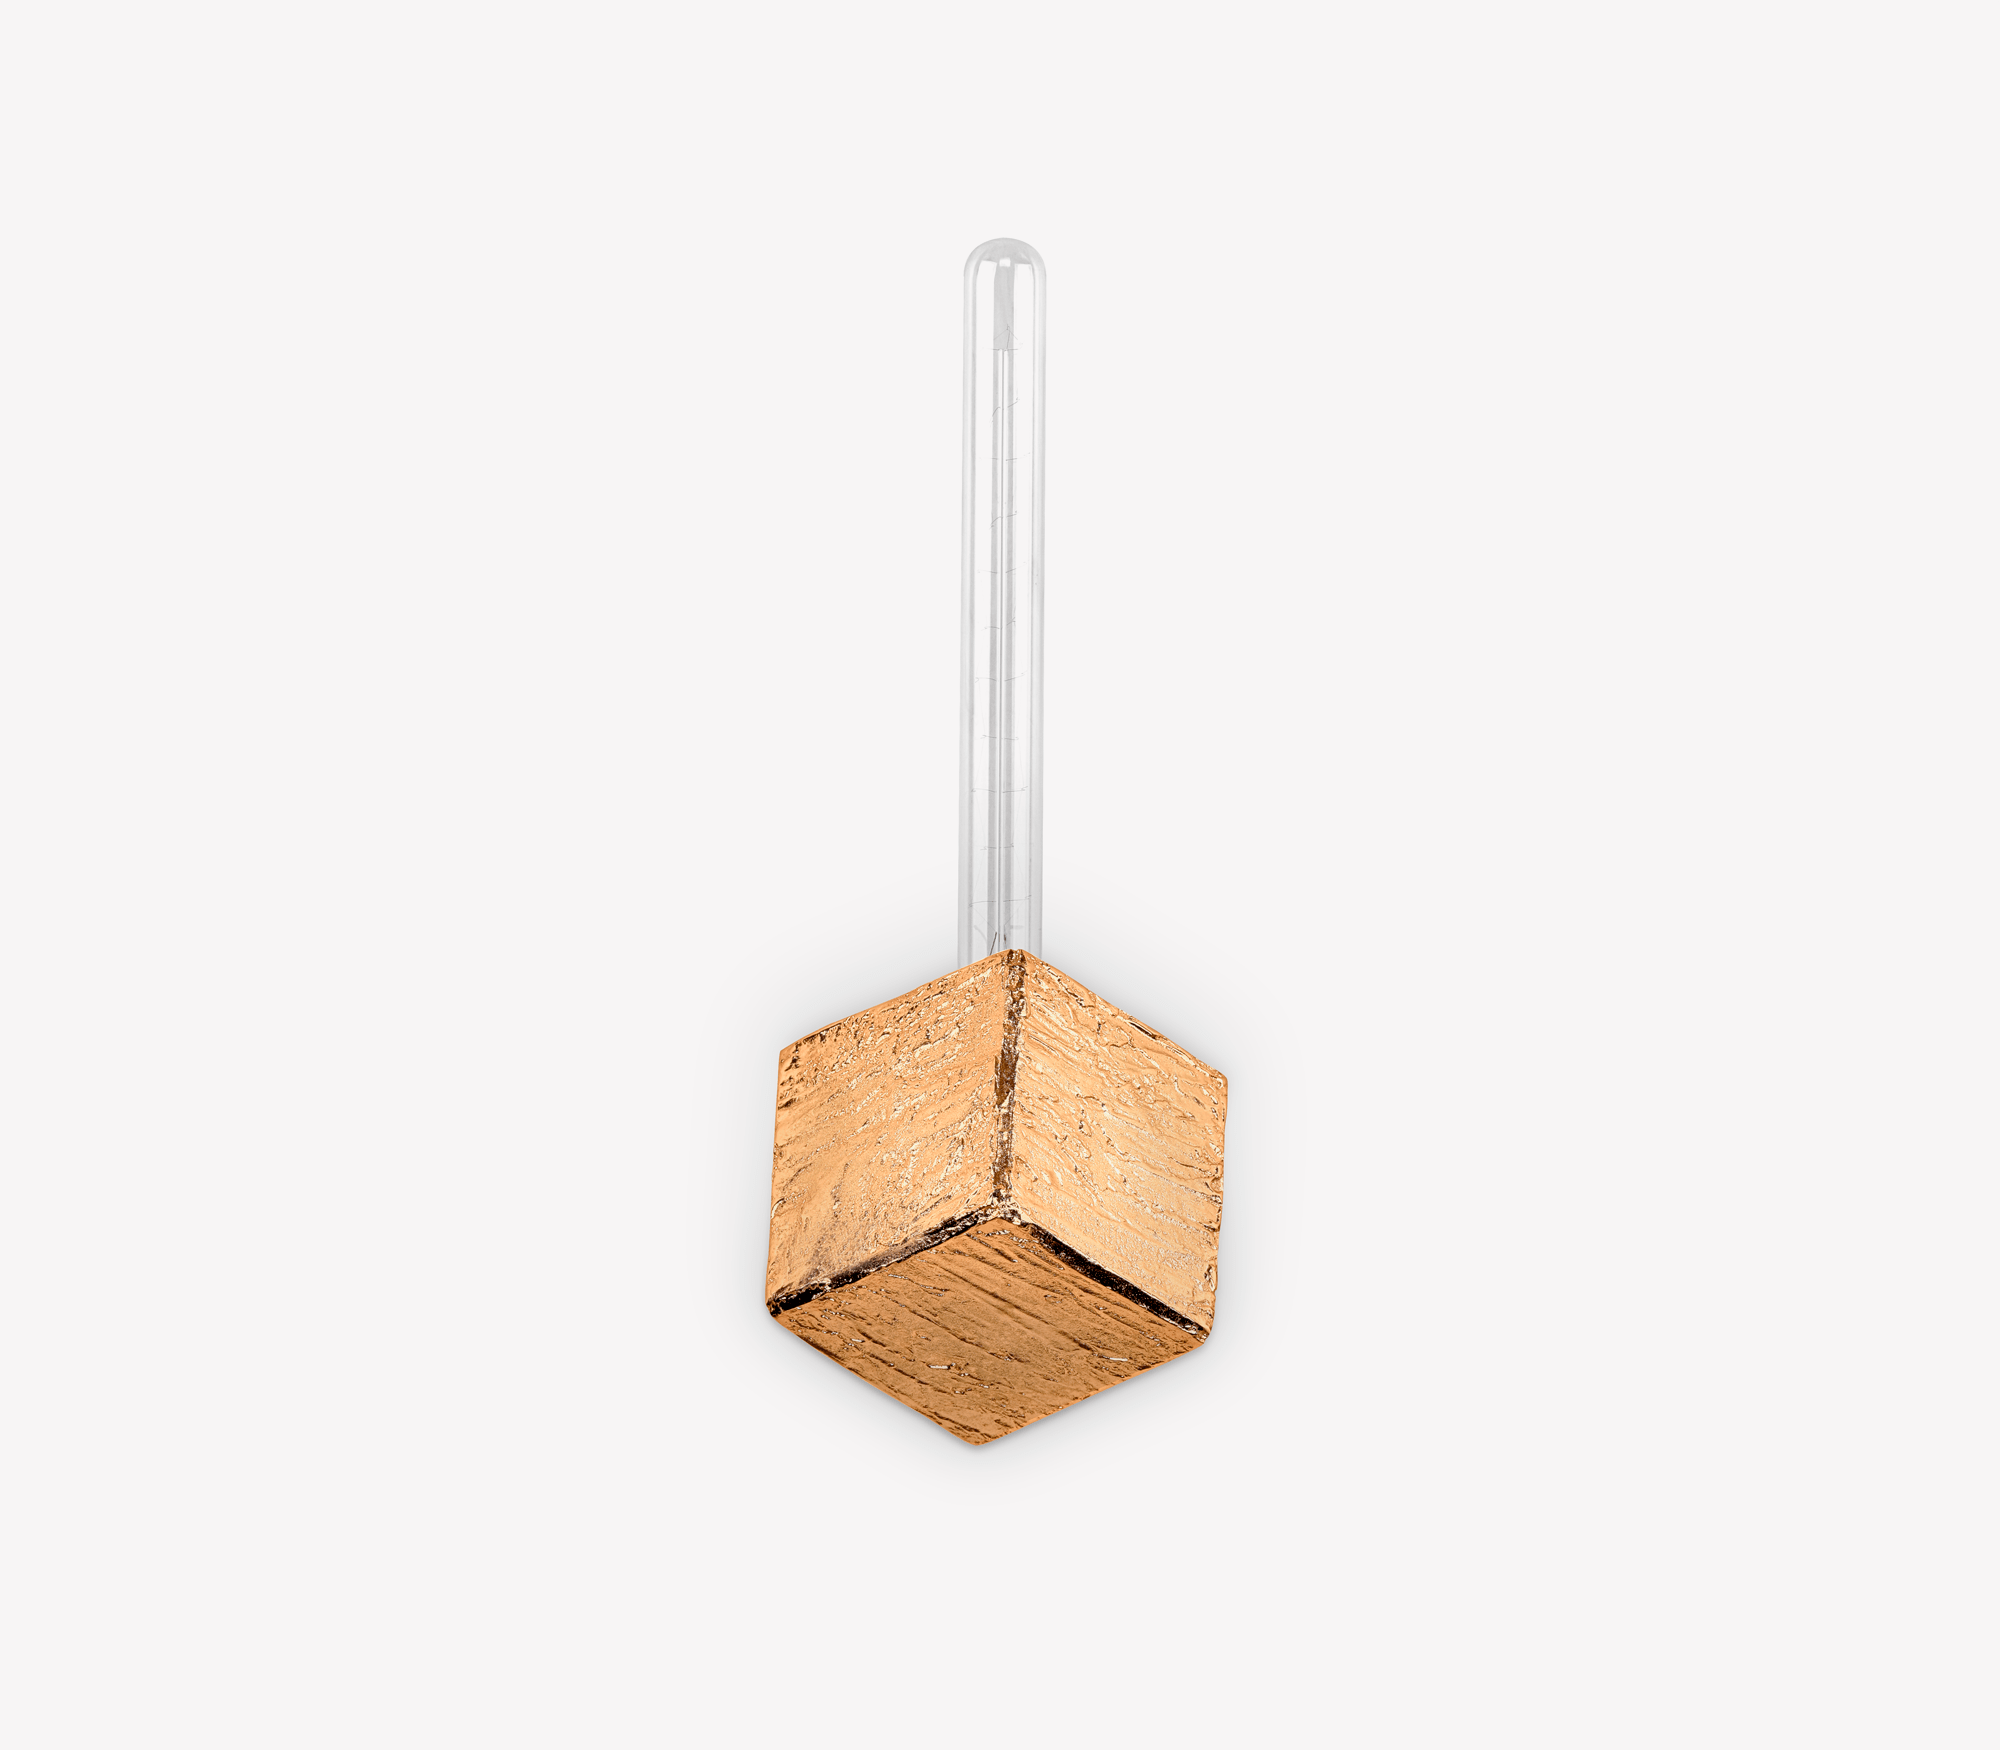 Cubic Small Sconce Wall Lamp by Boca do Lobo